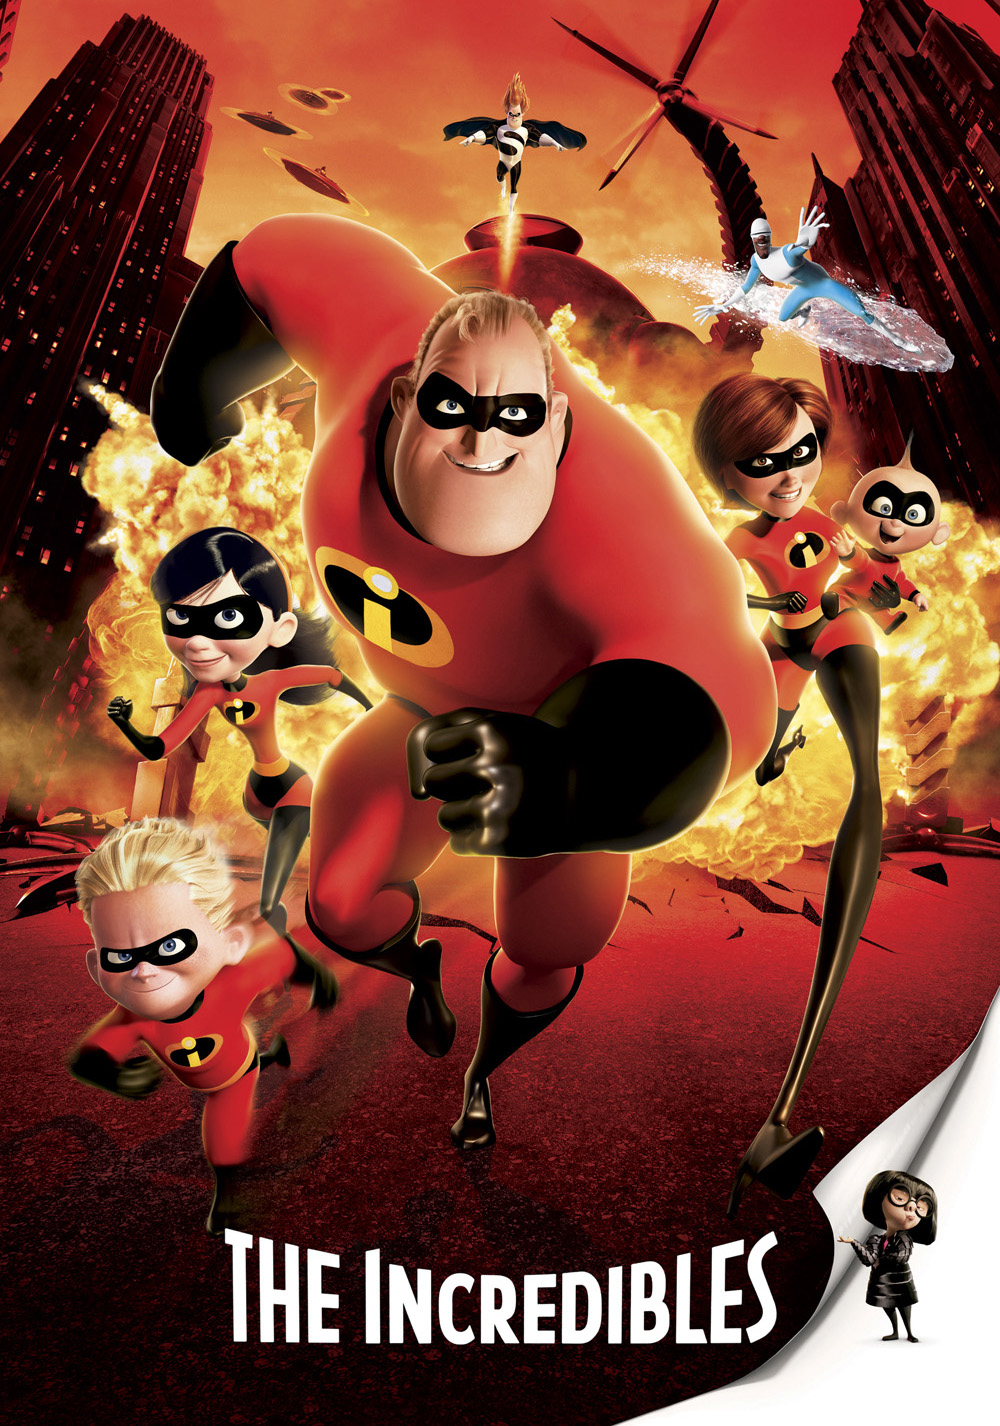 THE INCREDIBLES (2004) MOVIE TAMIL DUBBED HD